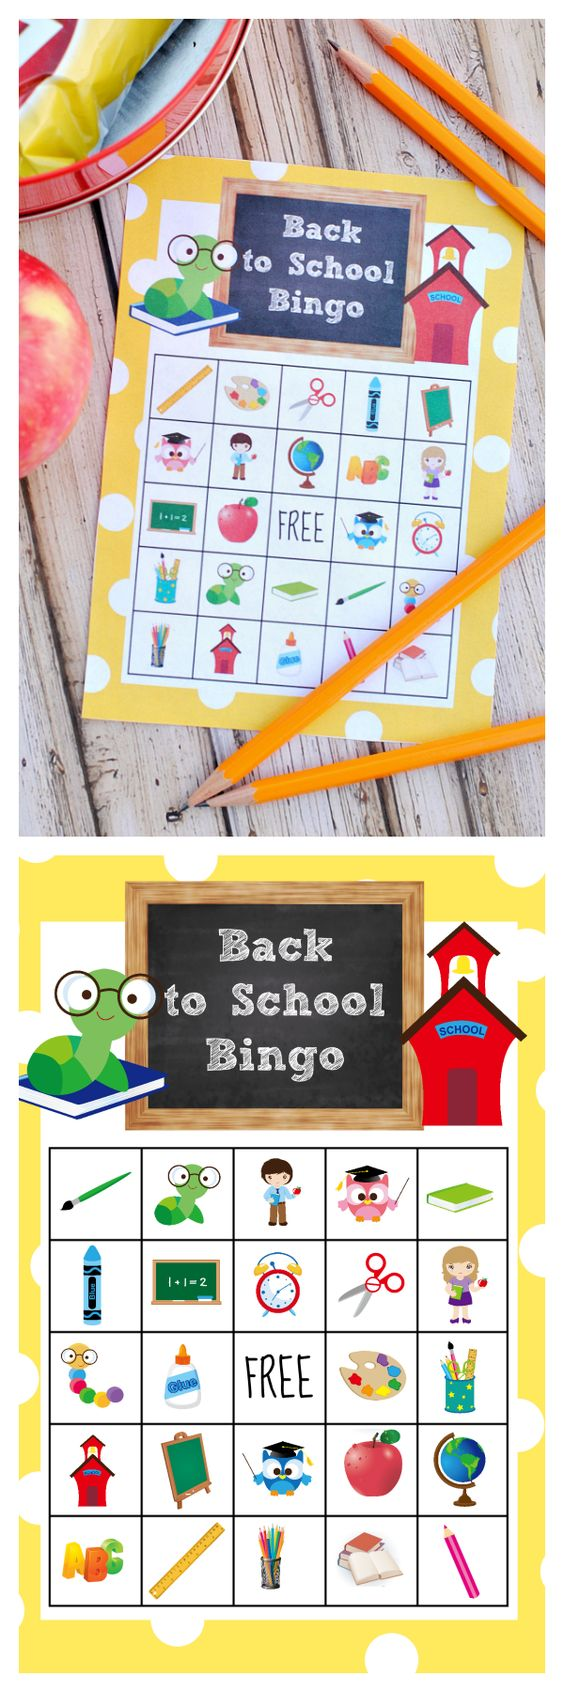 back to school bingo-crazy little projects